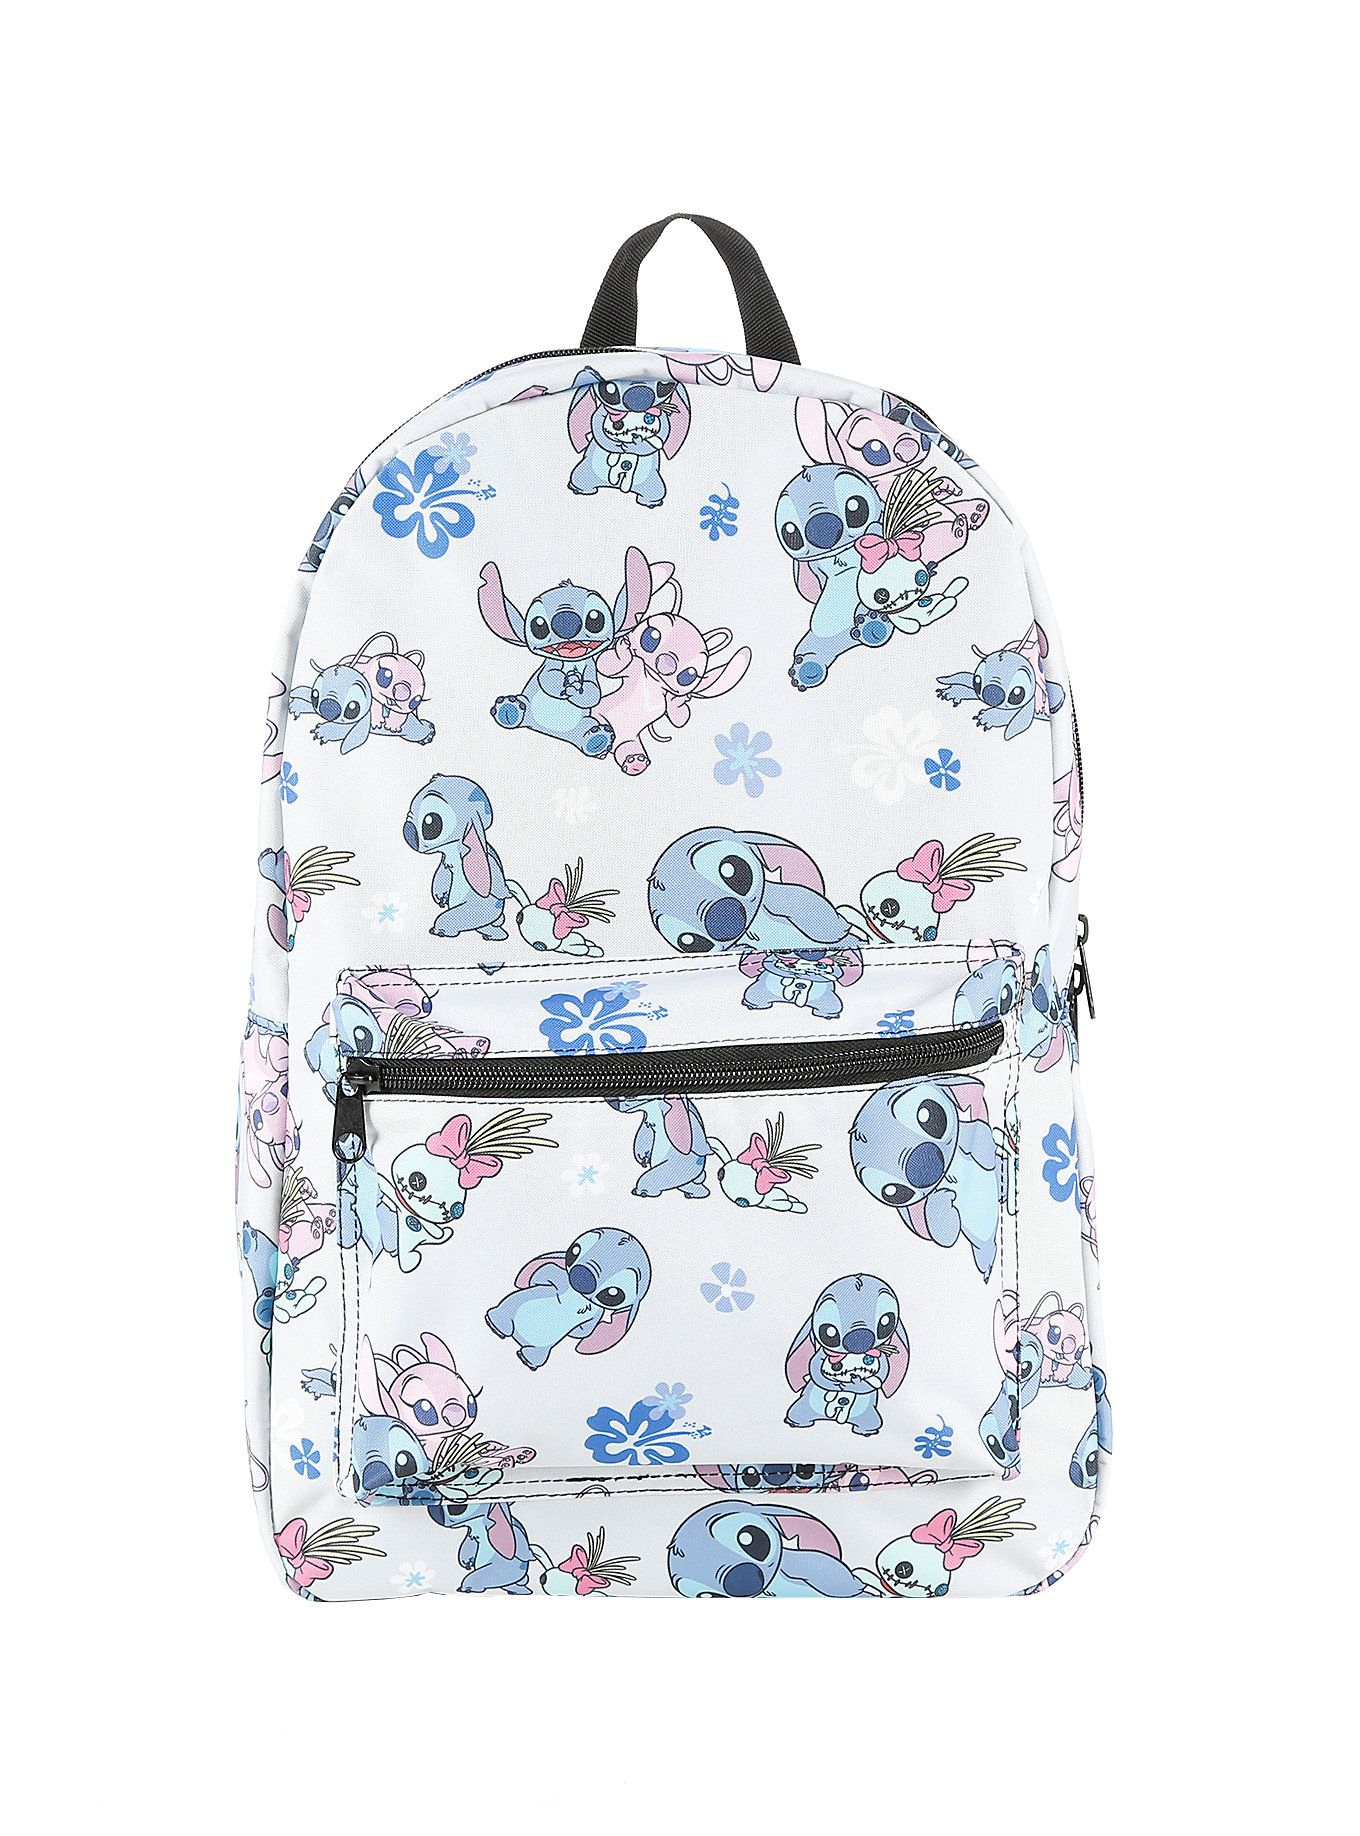 f5a0ffa872 11 Disney Backpacks To Up Your Accessories Game